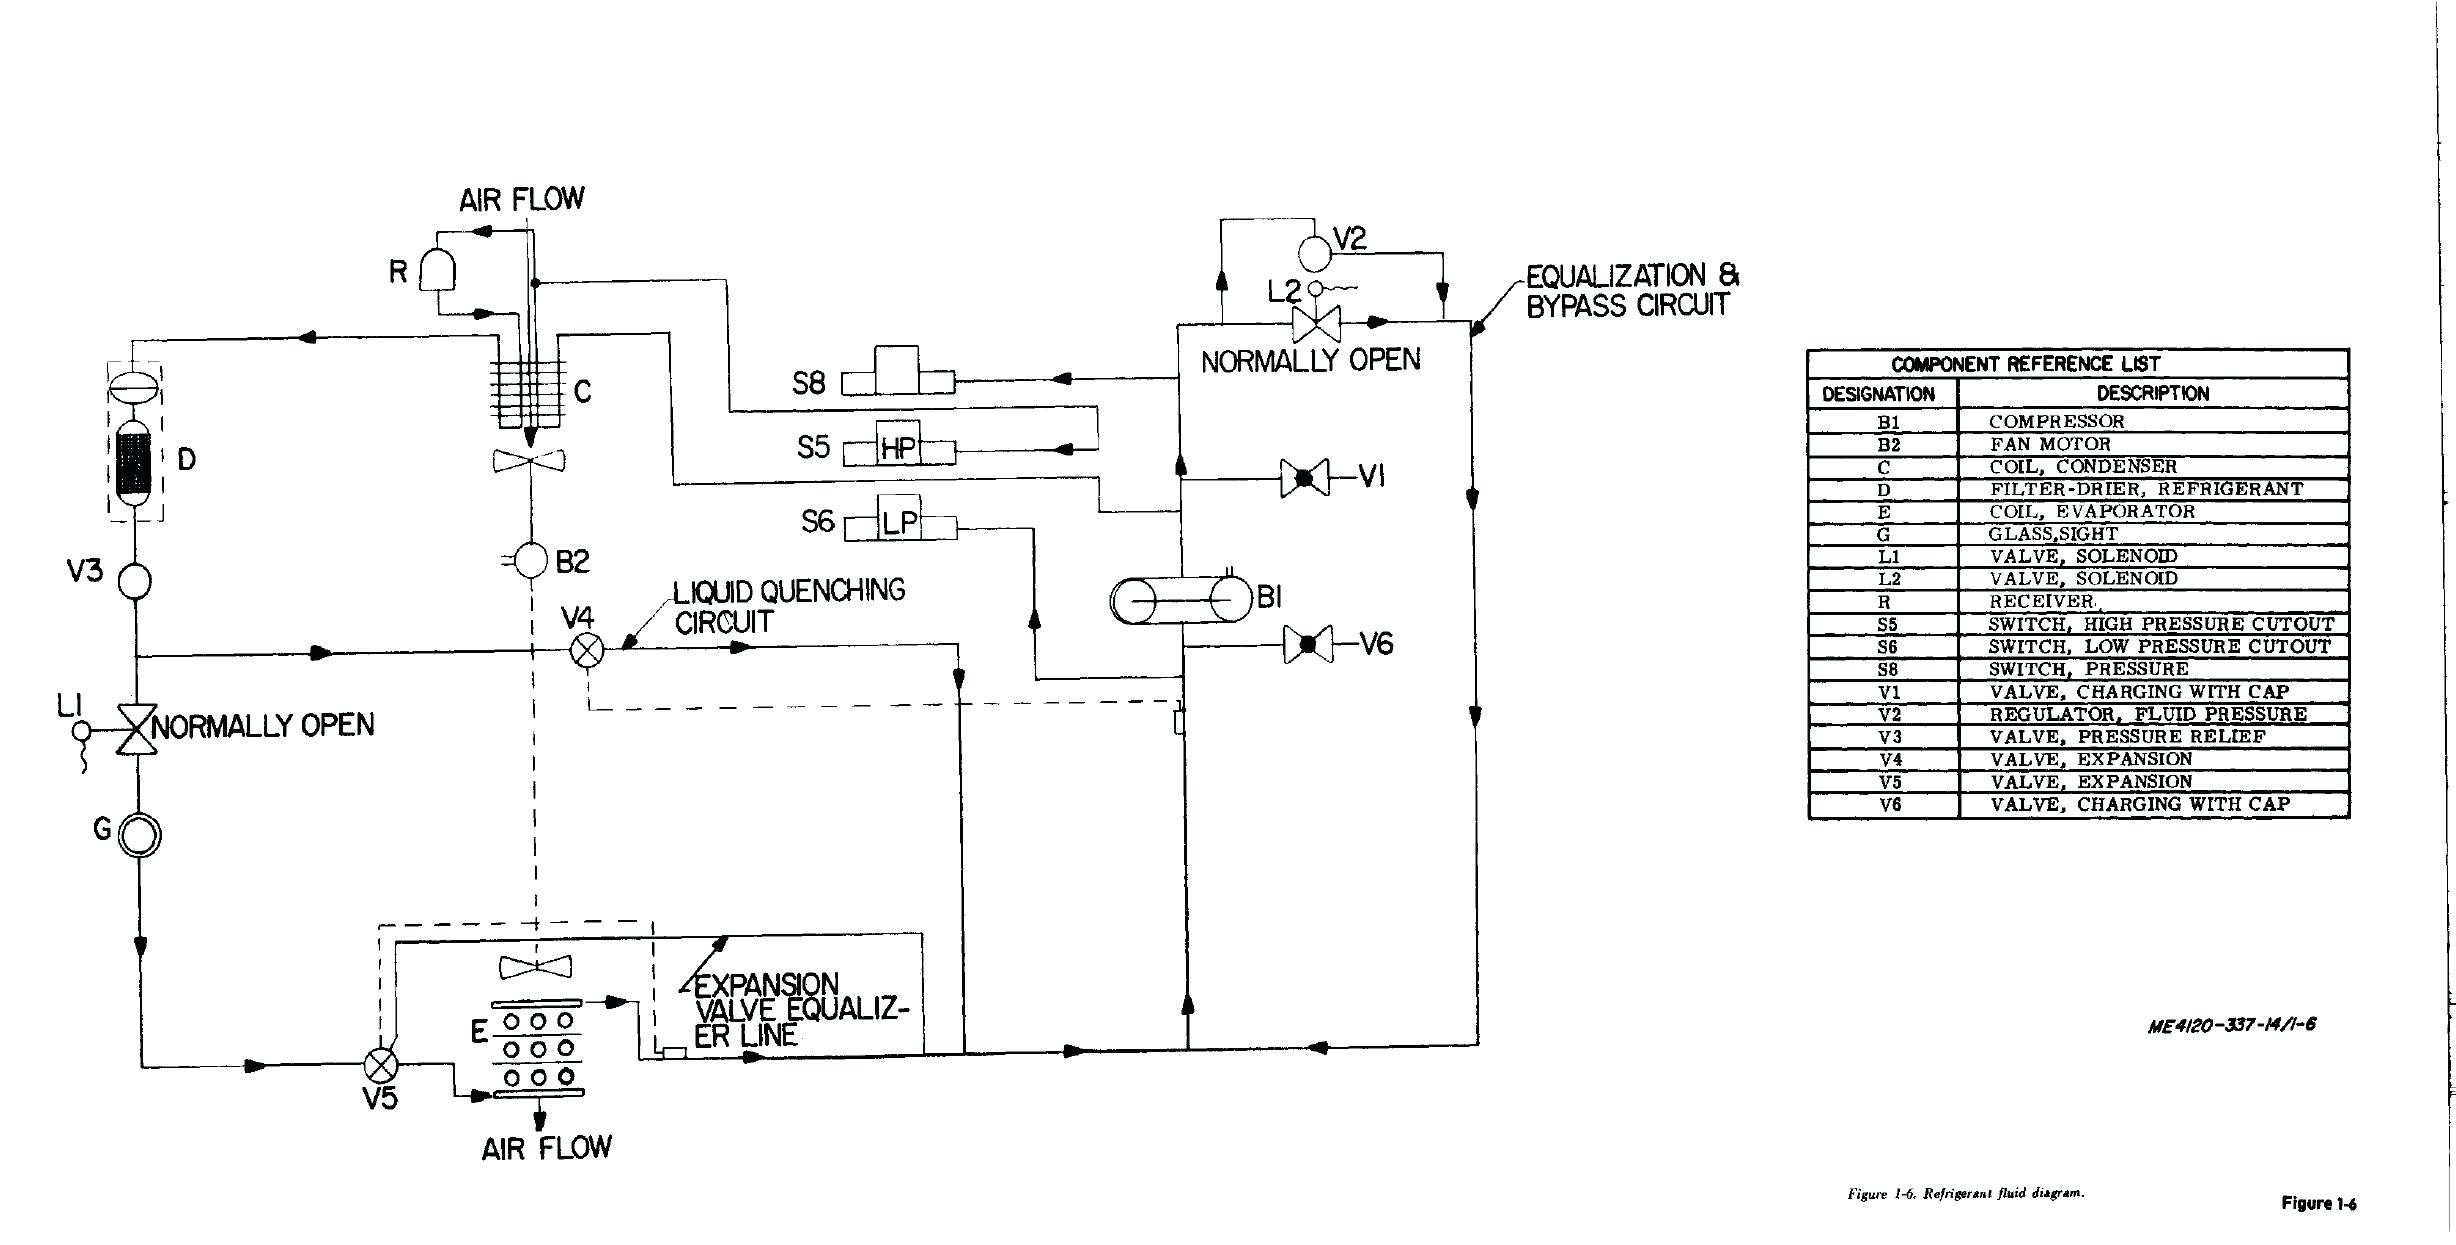 Auto Air Conditioner Diagram Auto Air Condition System Diagram Of Auto Air Conditioner Diagram